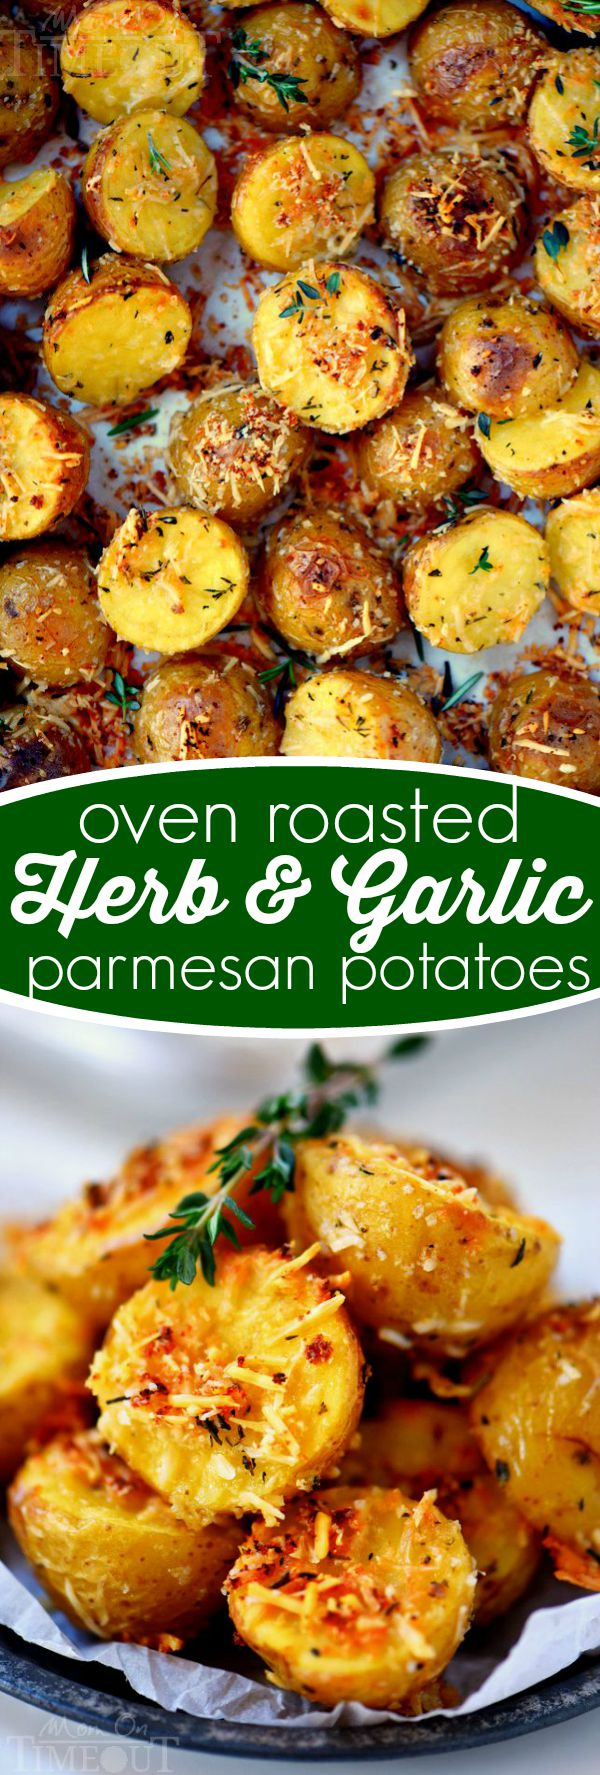 oven-roasted-herb-garlic-parmesan-potatoes-recipe-collage